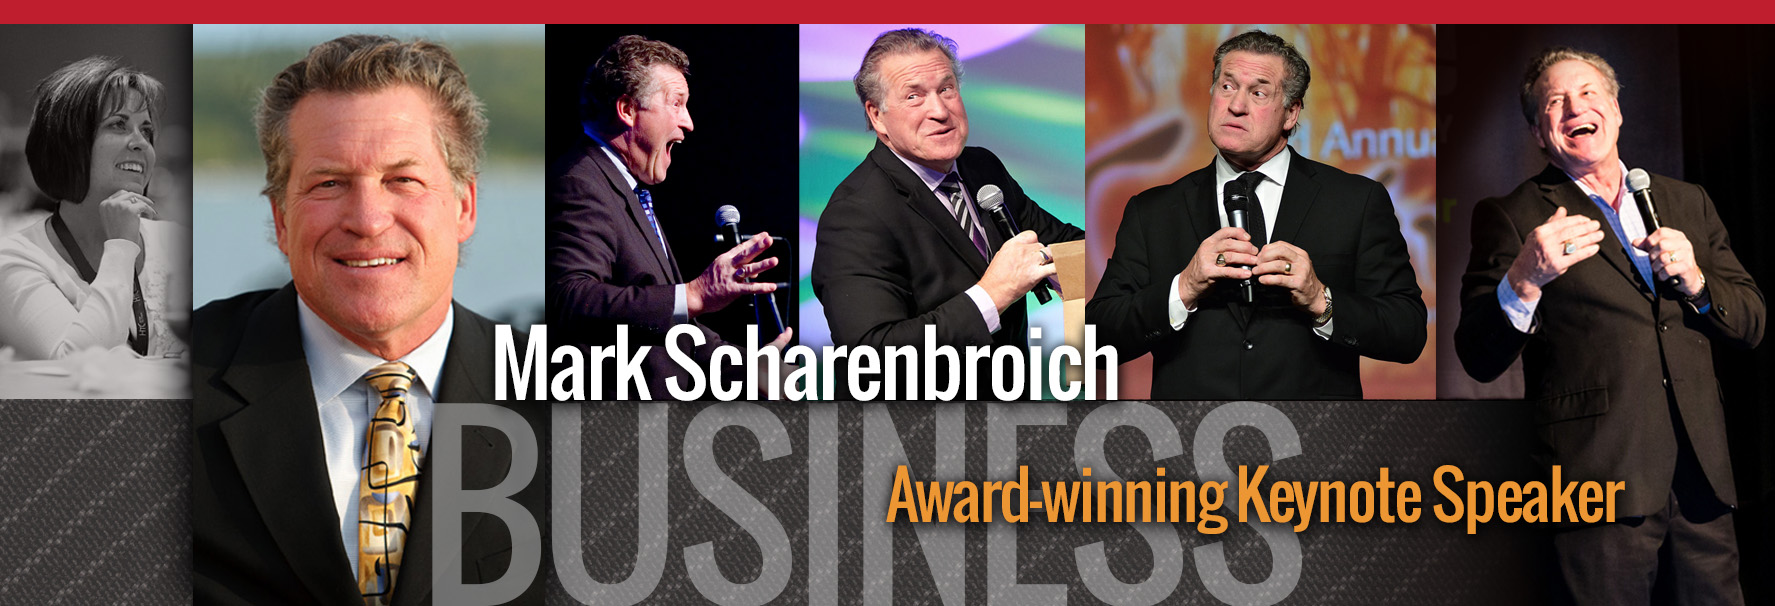 Mark Scharenbroich is an award winning international business professional keynote speaker